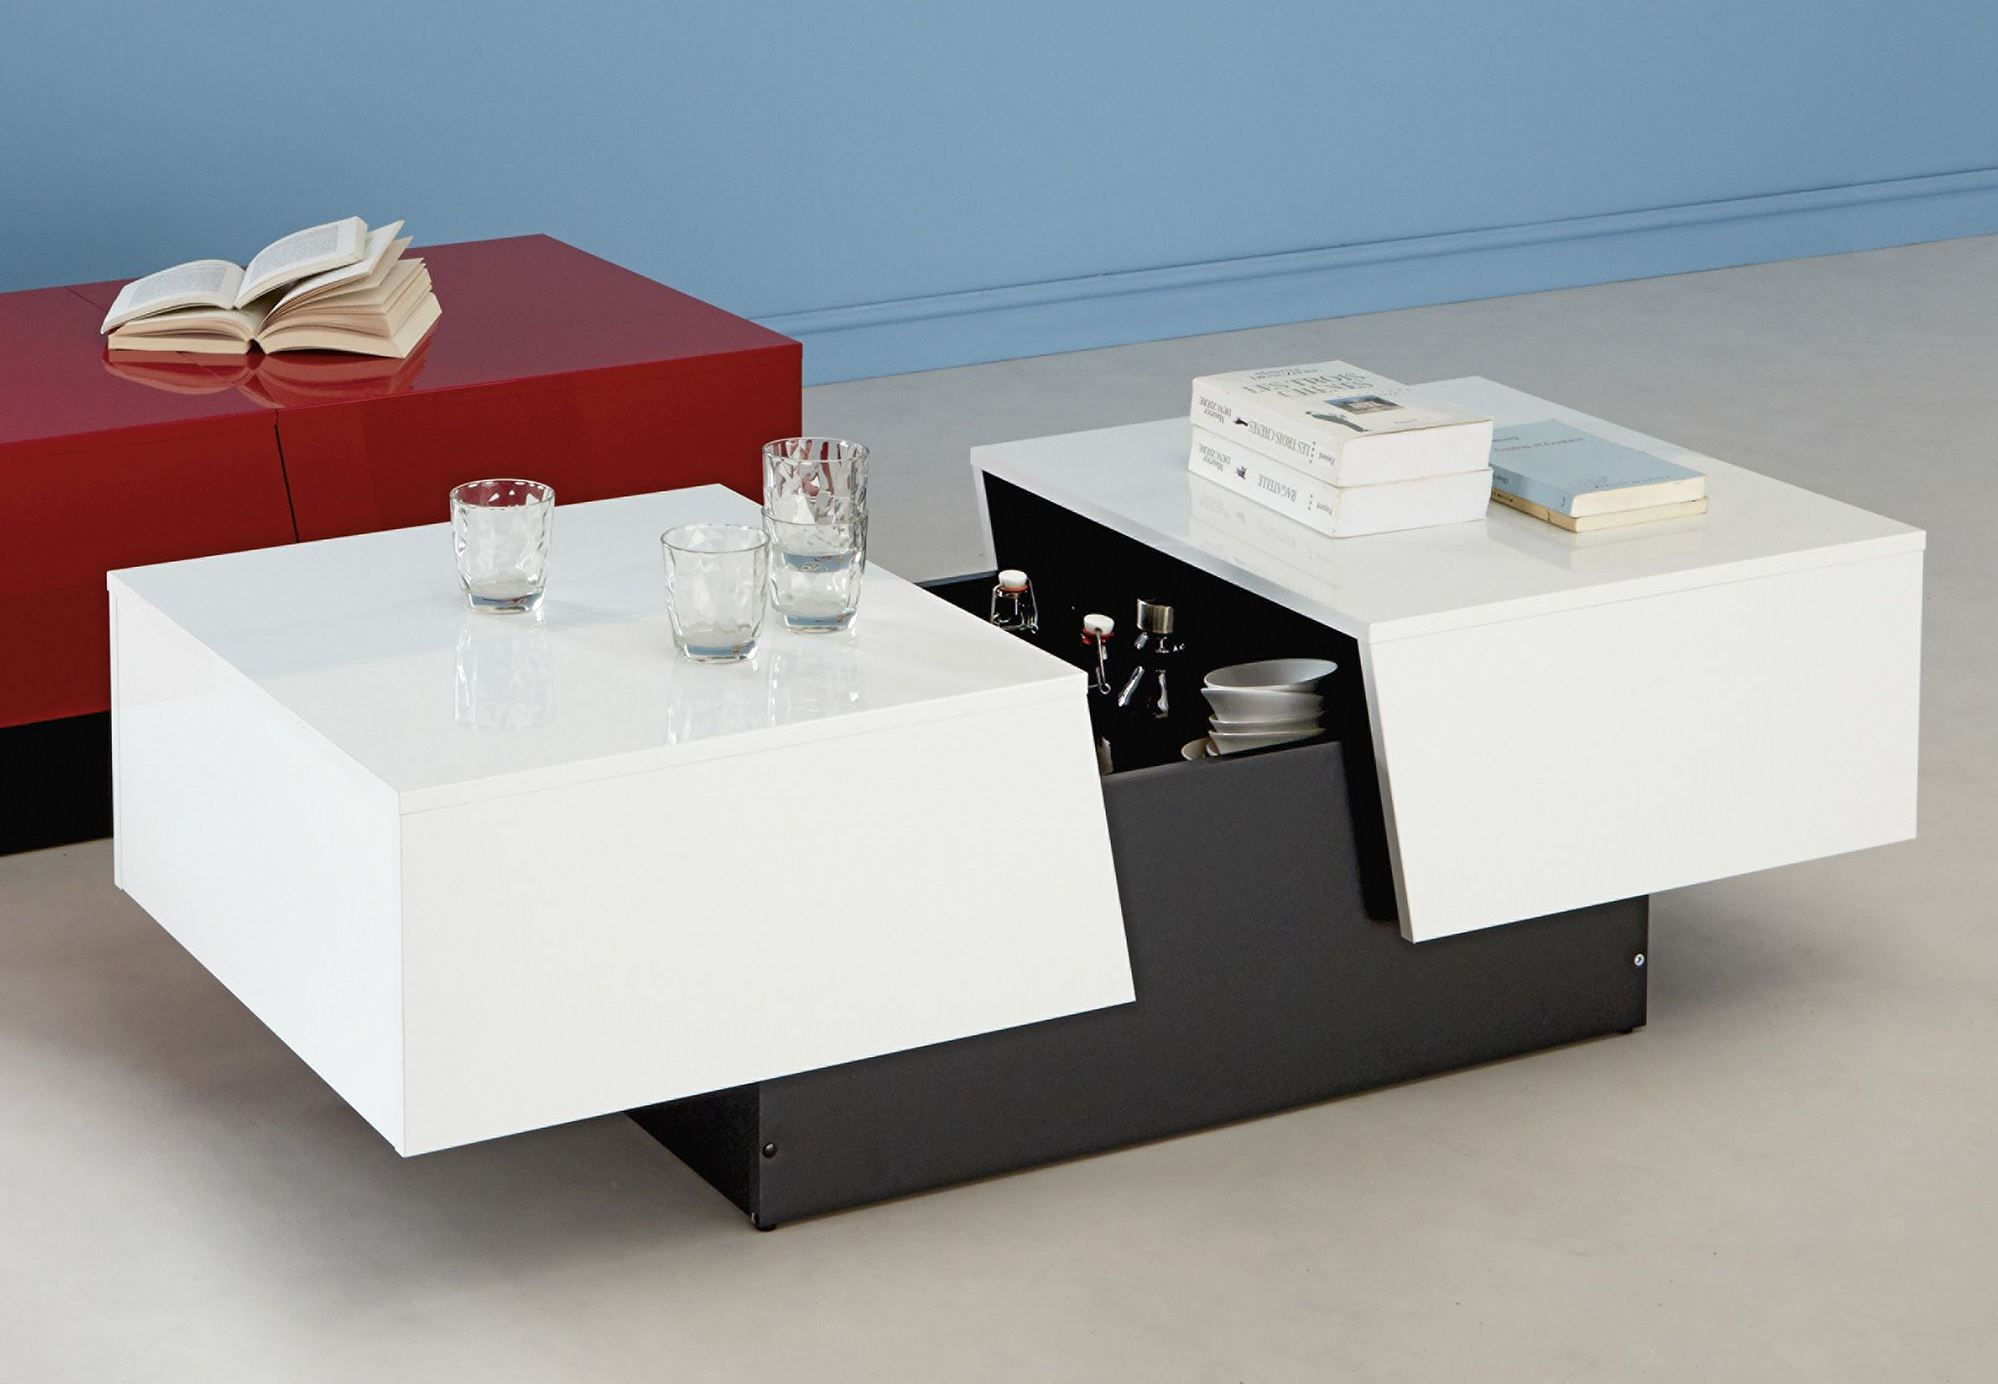 Comment choisir une table basse multifonction bnbstaging for Table basse alinea